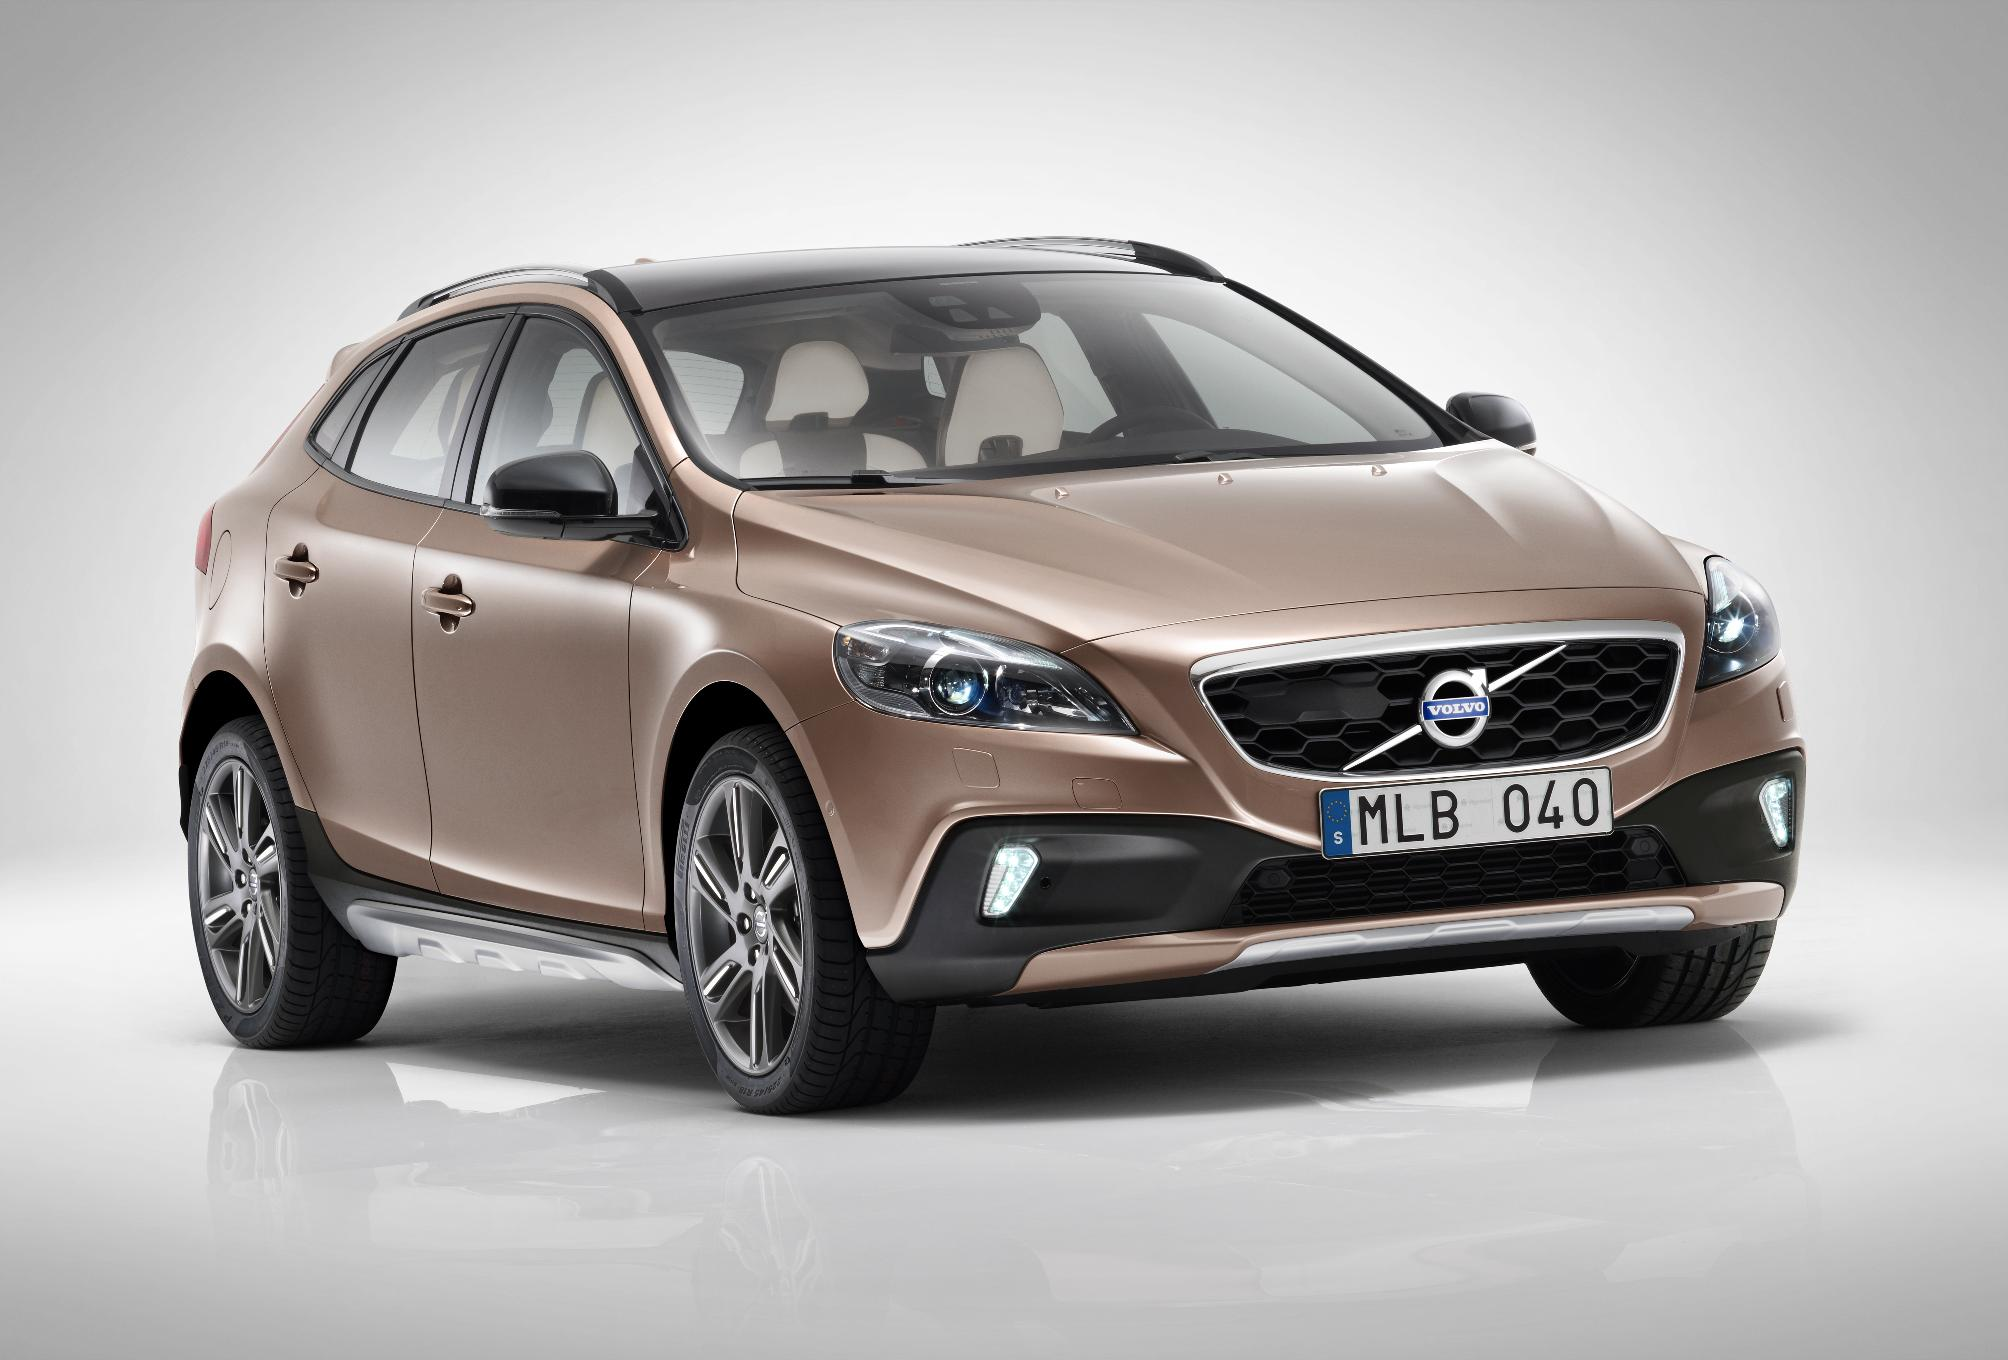 volvo v40 cross country india price review images volvo cars. Black Bedroom Furniture Sets. Home Design Ideas